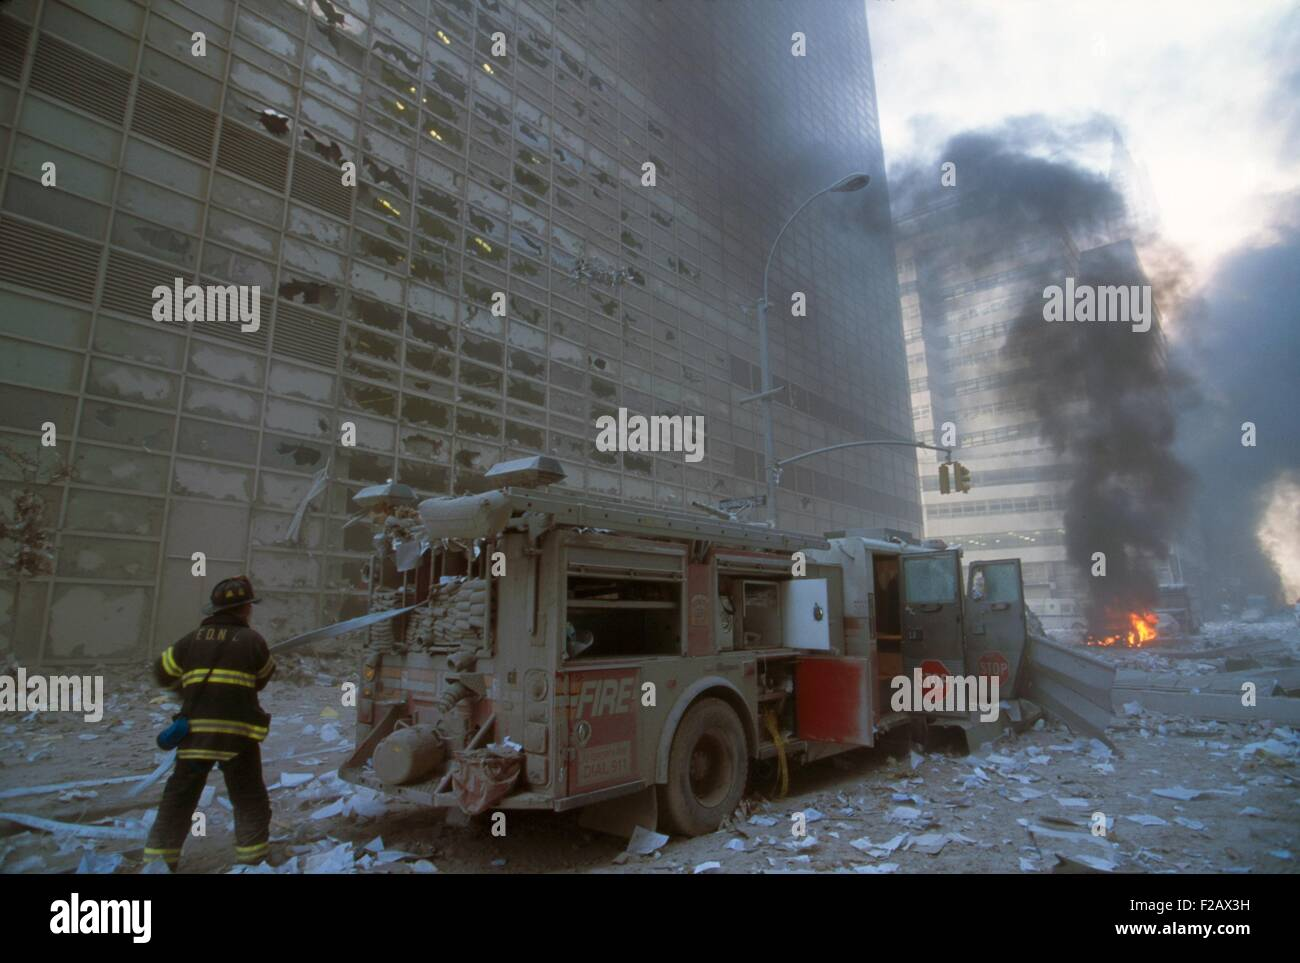 nyc fireman pulling water hose from fire truck after the 9 11 stock photo 87521157 alamy. Black Bedroom Furniture Sets. Home Design Ideas